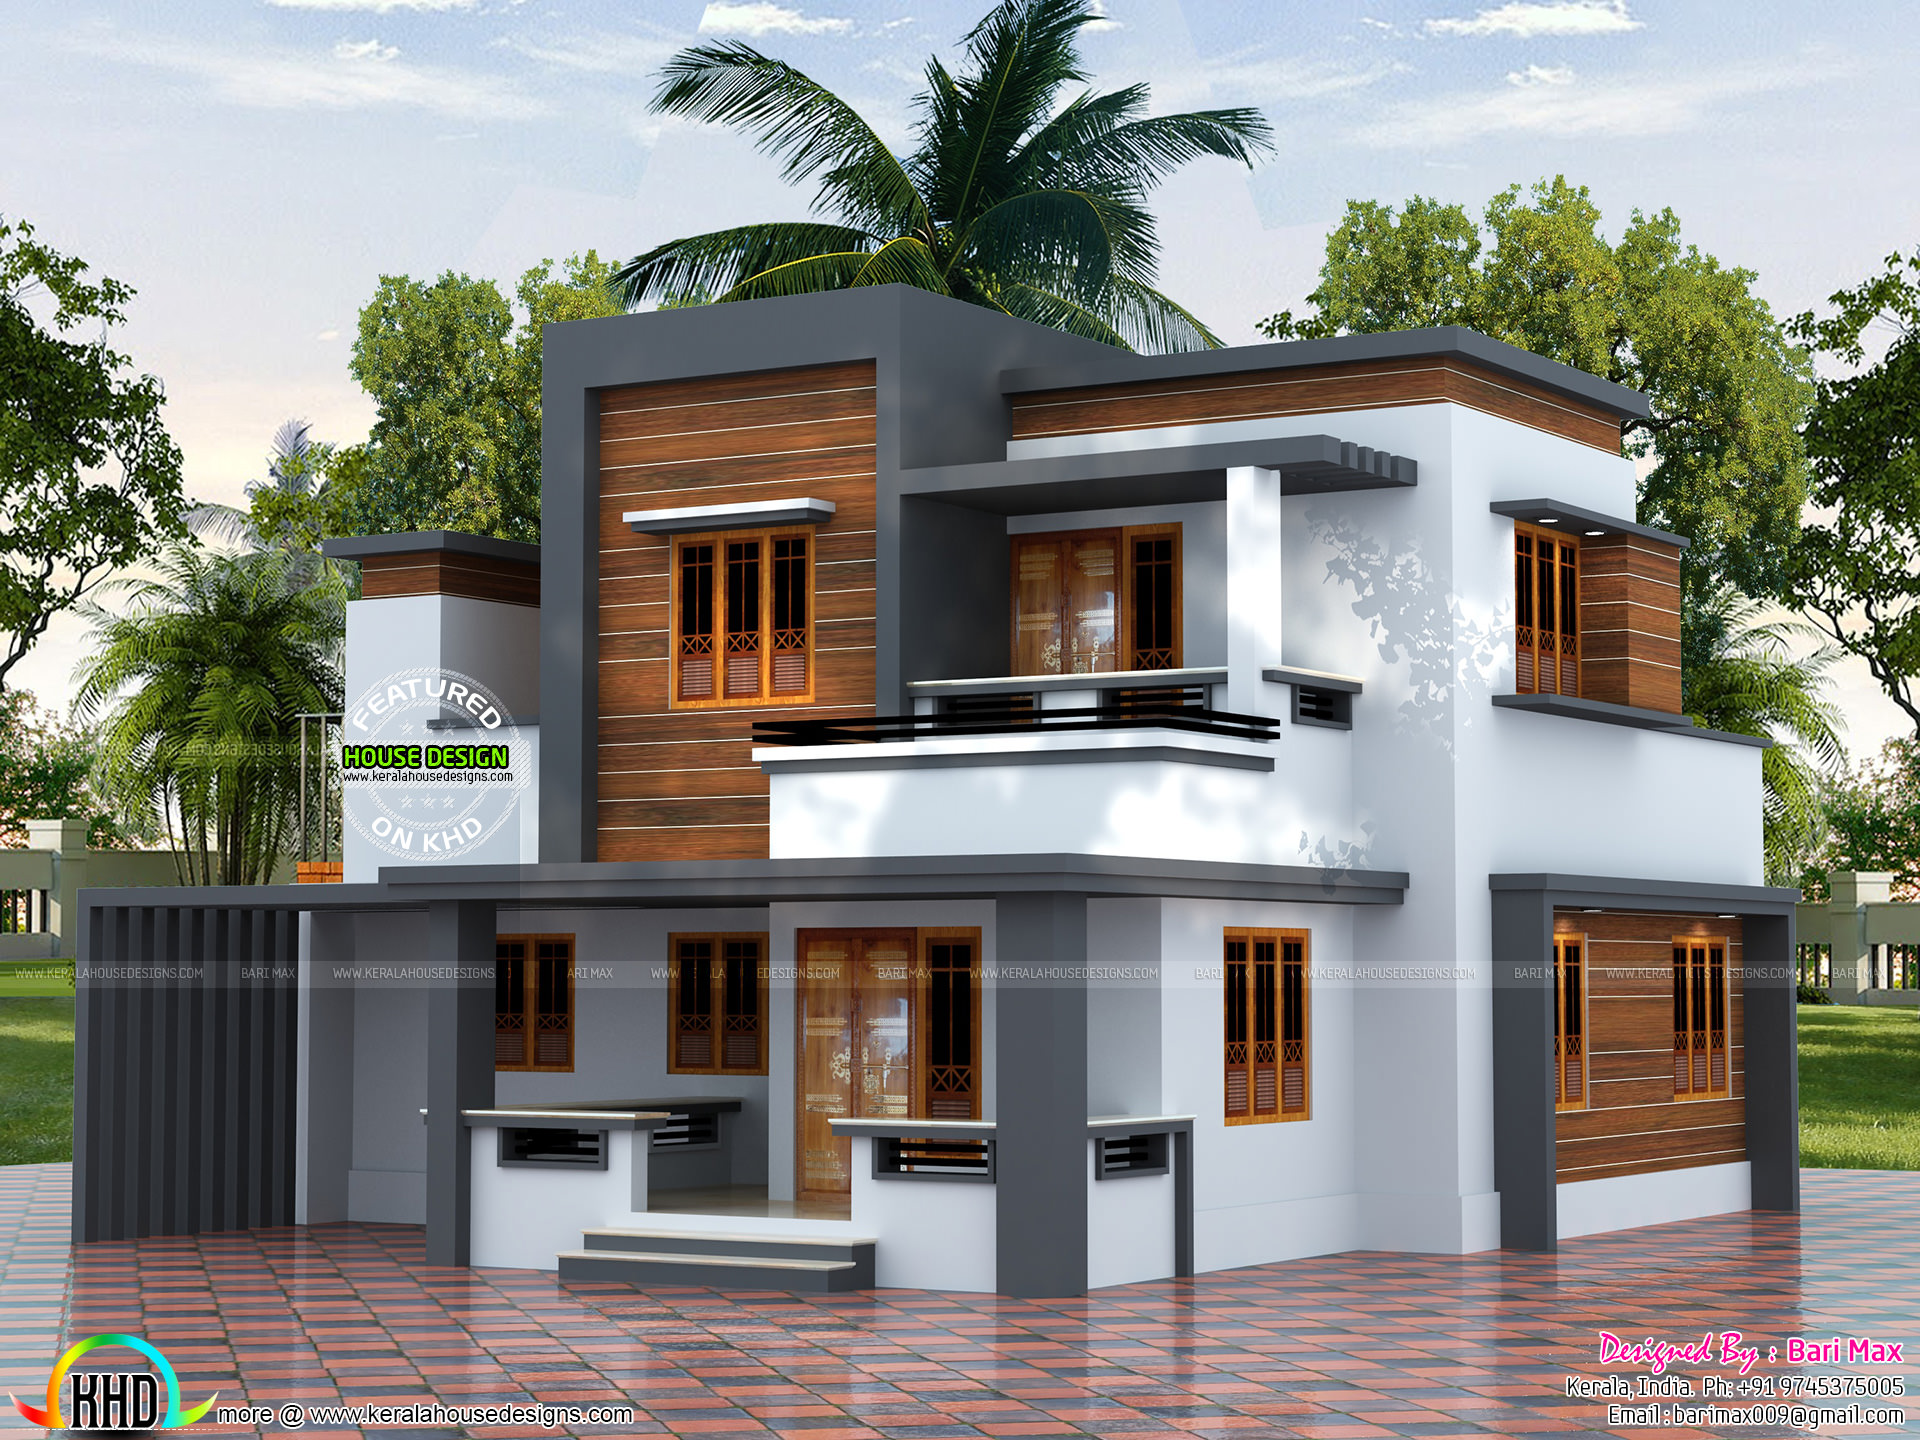 22 5 lakh cost estimated modern house kerala home for Estimated cost building duplex